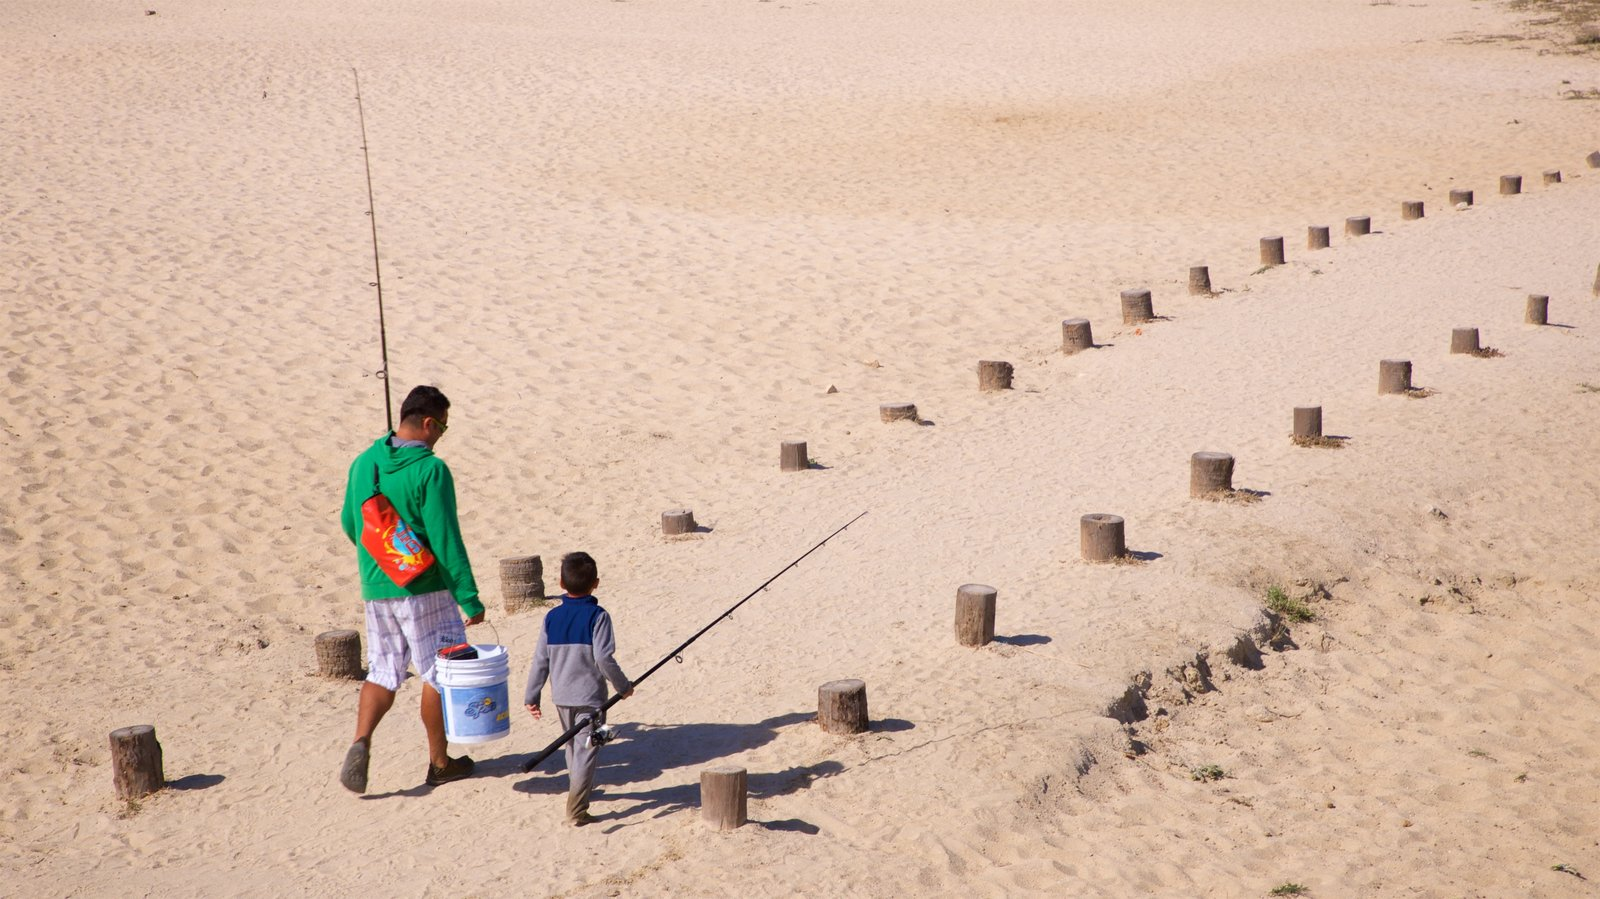 San Jose del Cabo featuring fishing, general coastal views and a sandy beach